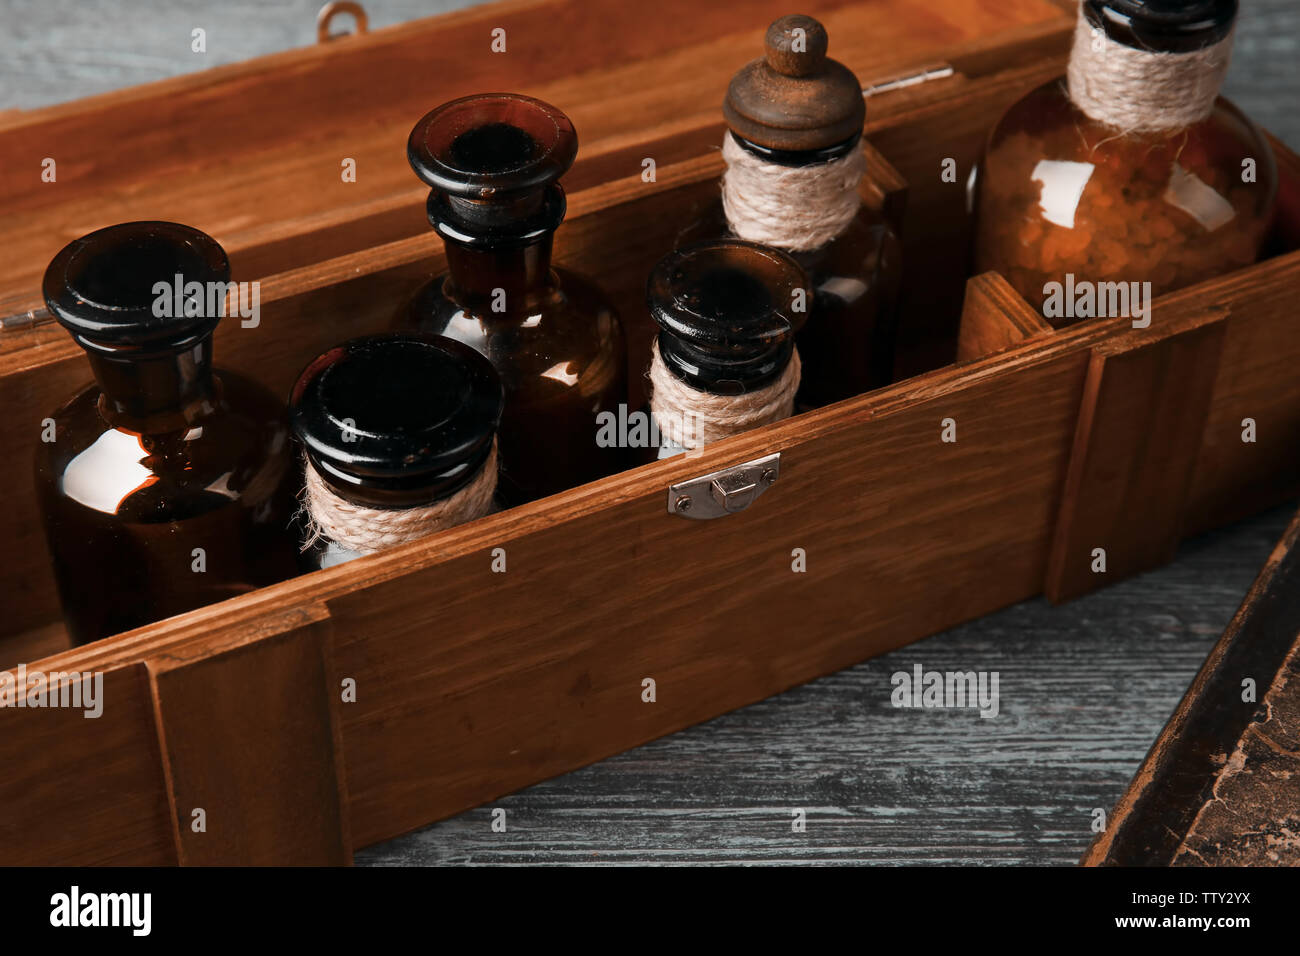 Vintage glass bottles in wooden box, closeup - Stock Image